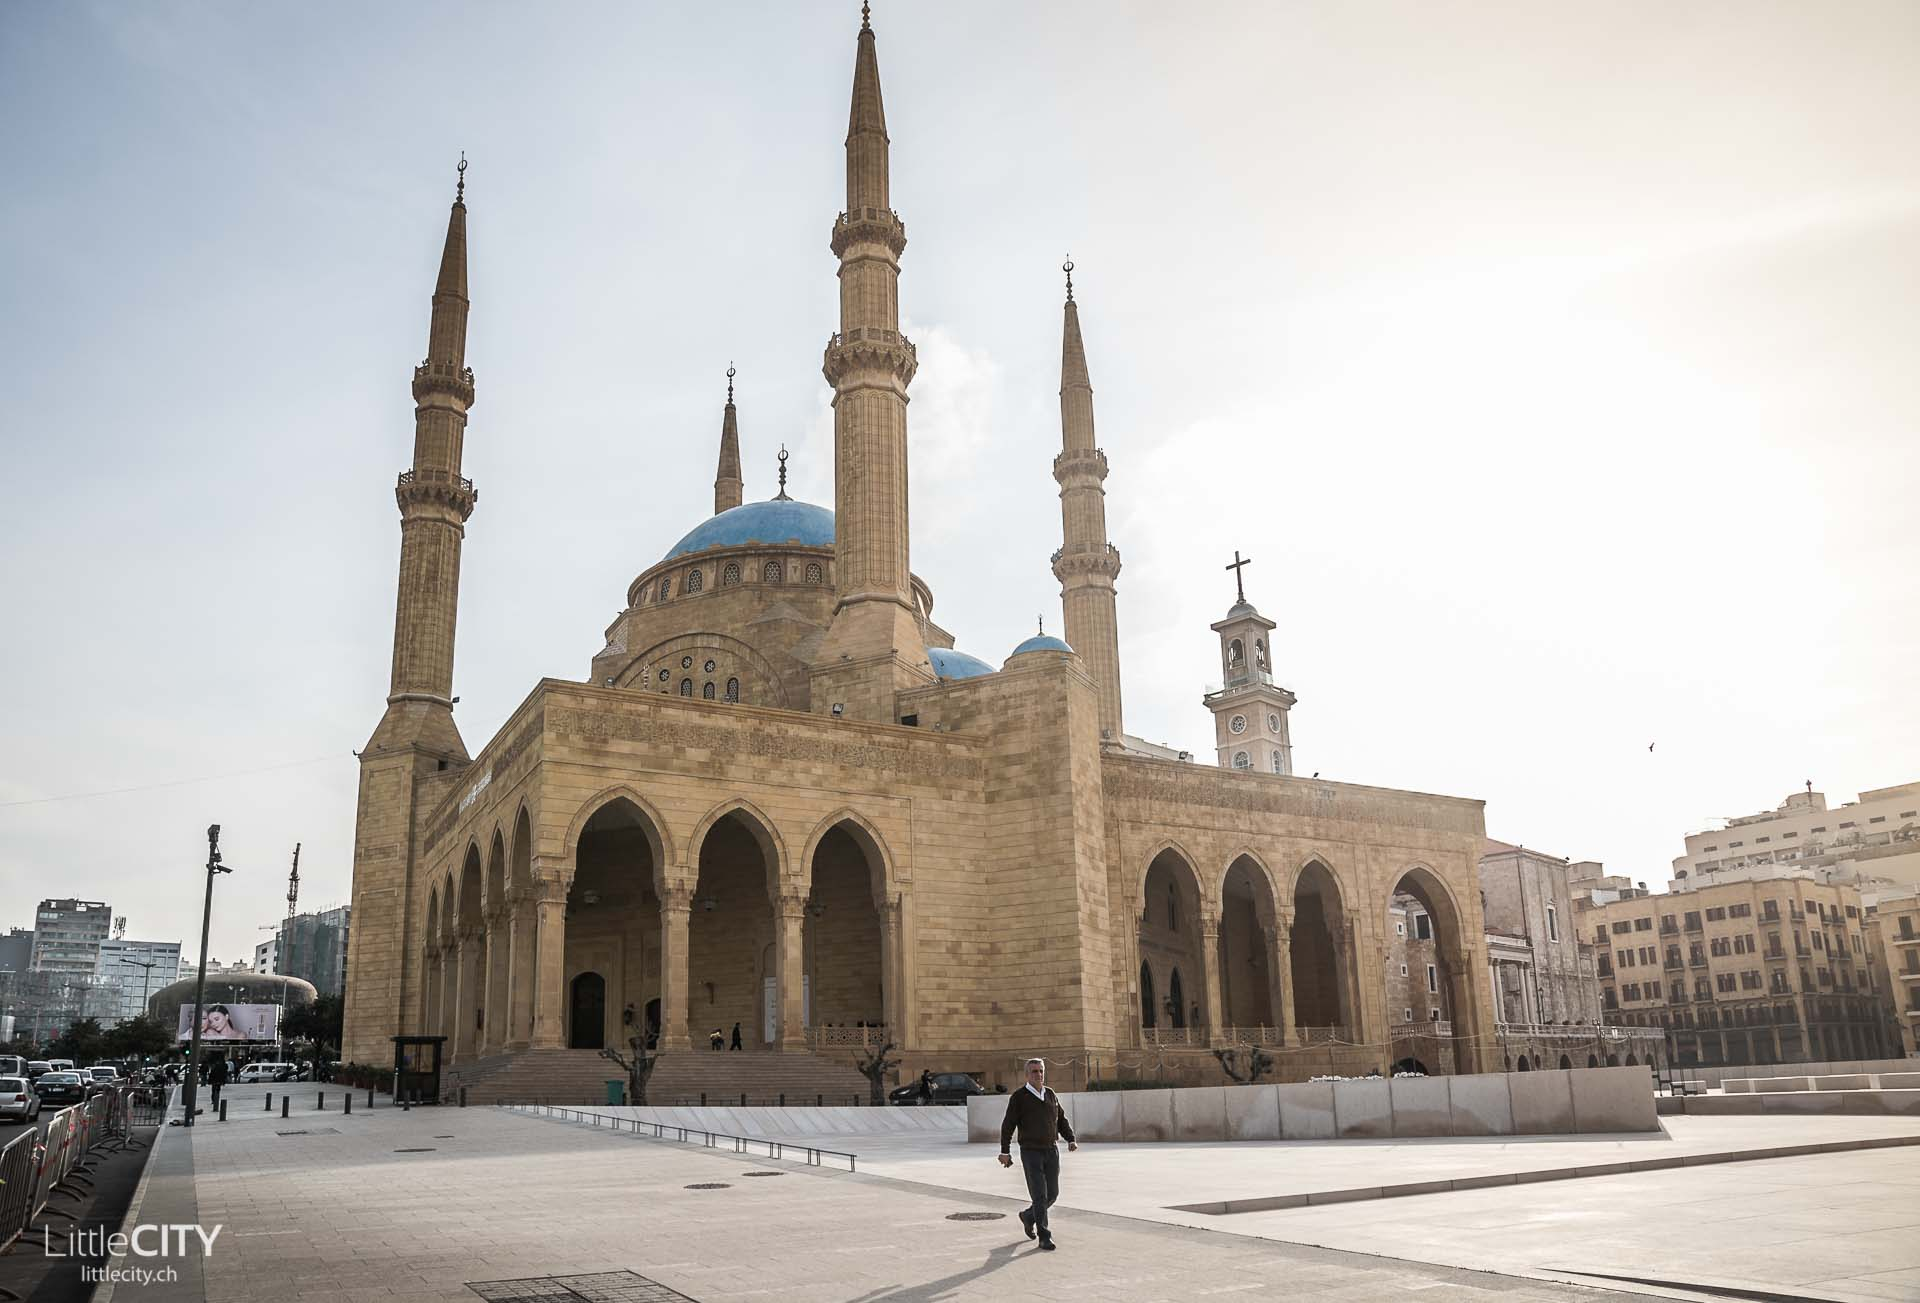 Mohammed-al-Amin-Moschee in Beirut